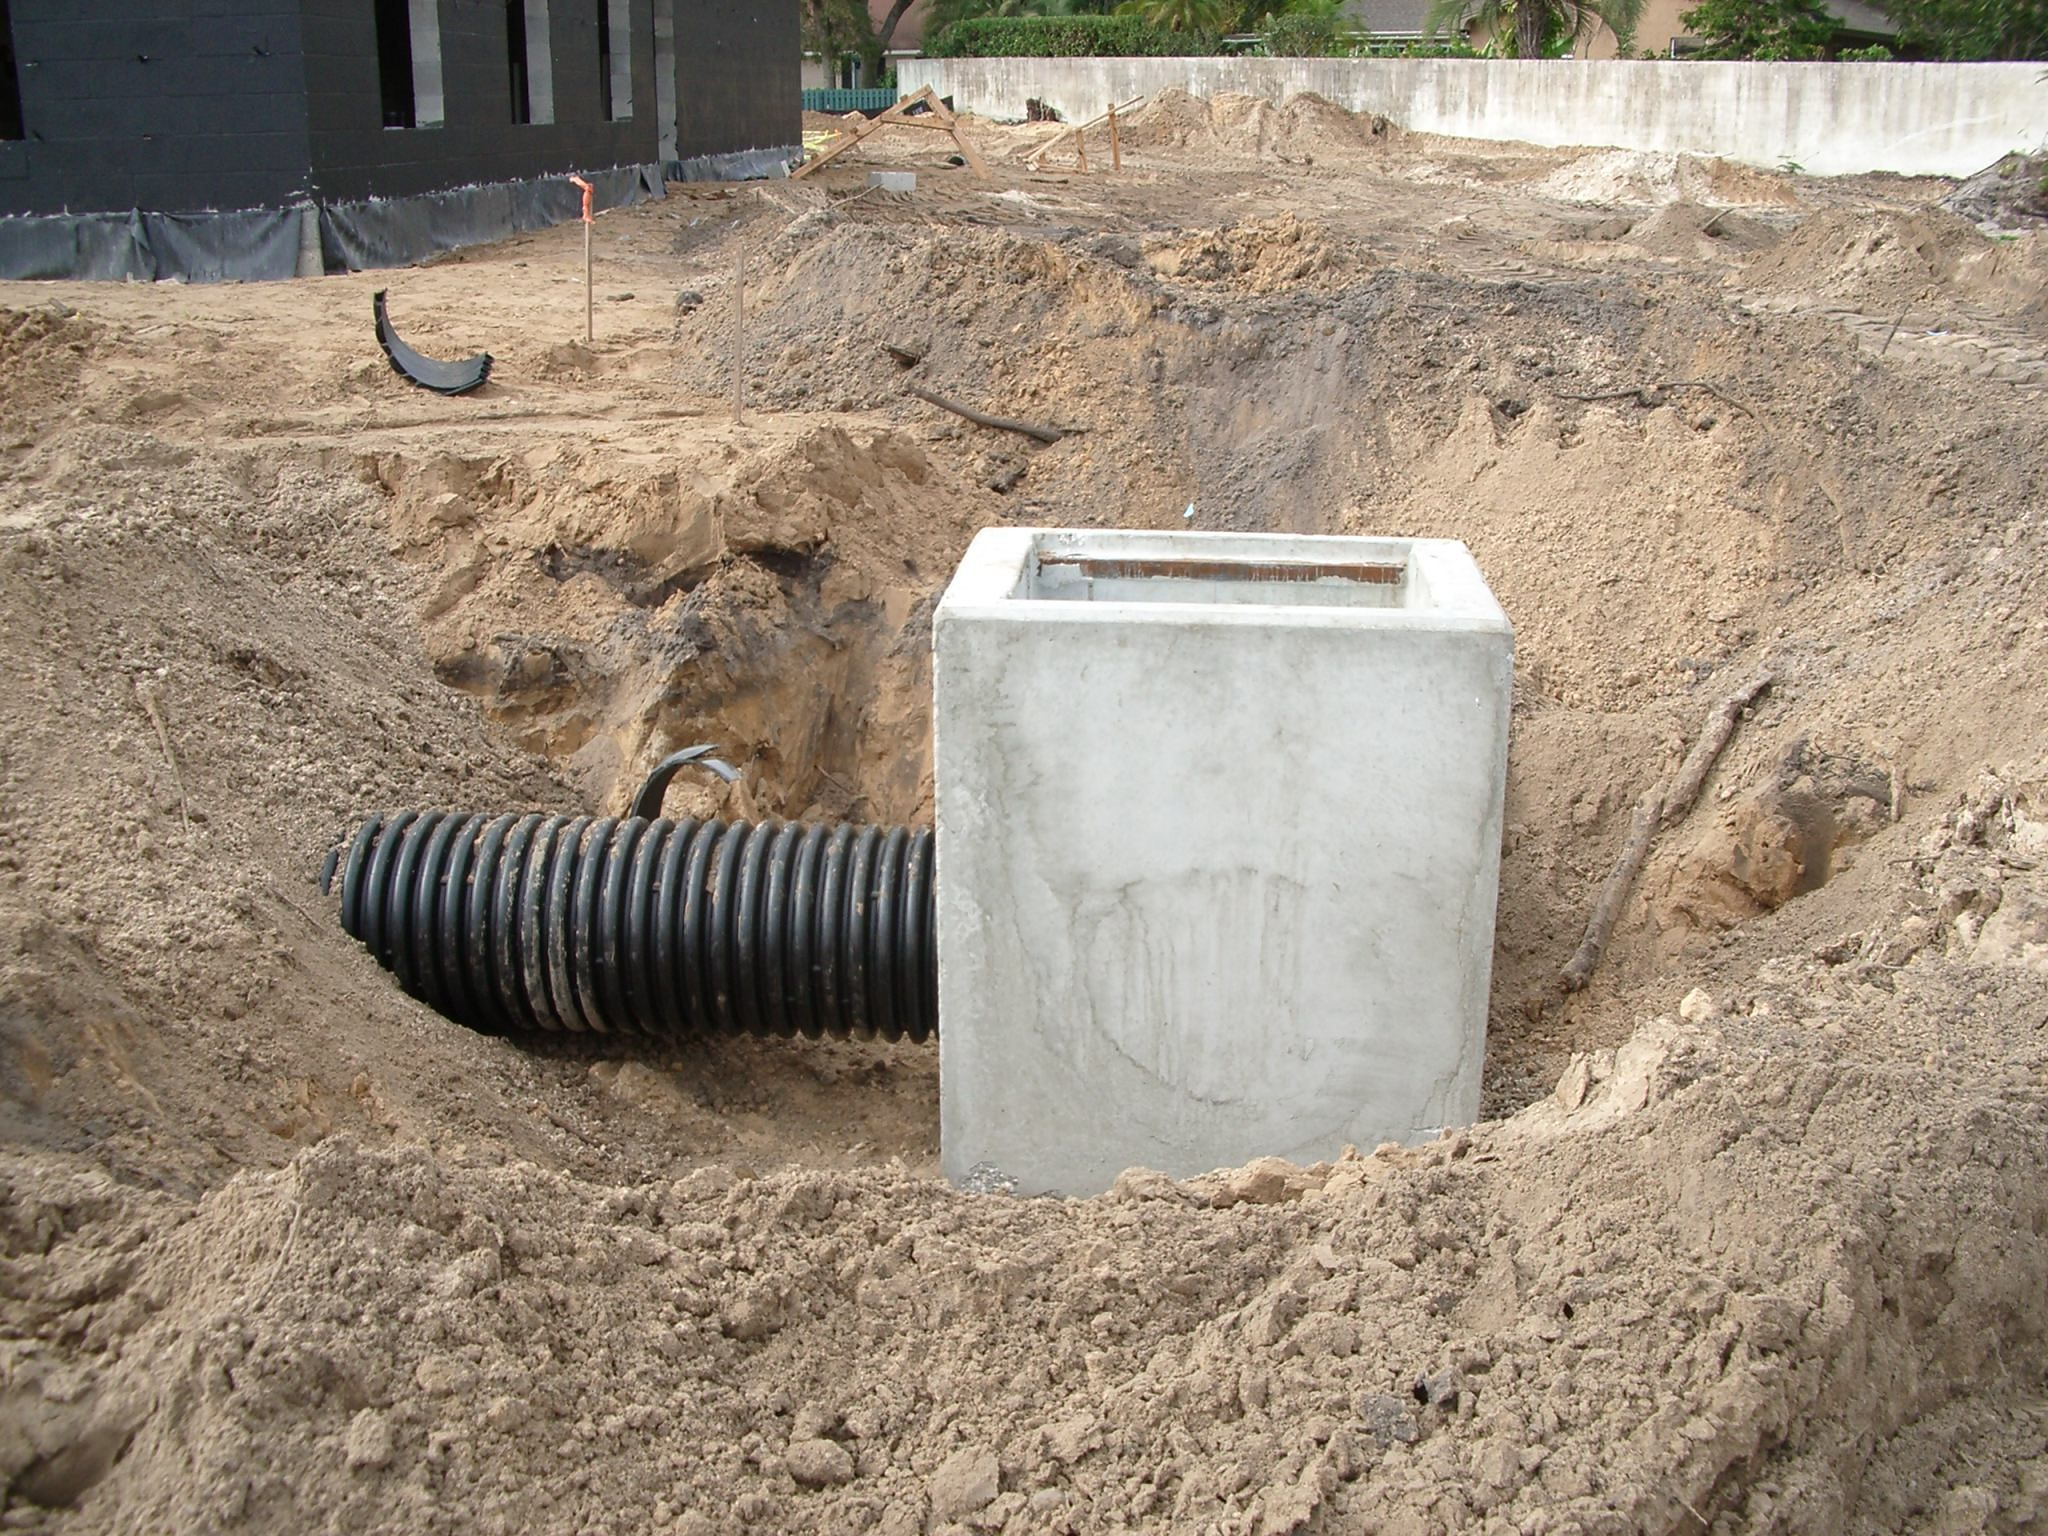 Catch Basin Install | Building systems, Farm gardens, Basin